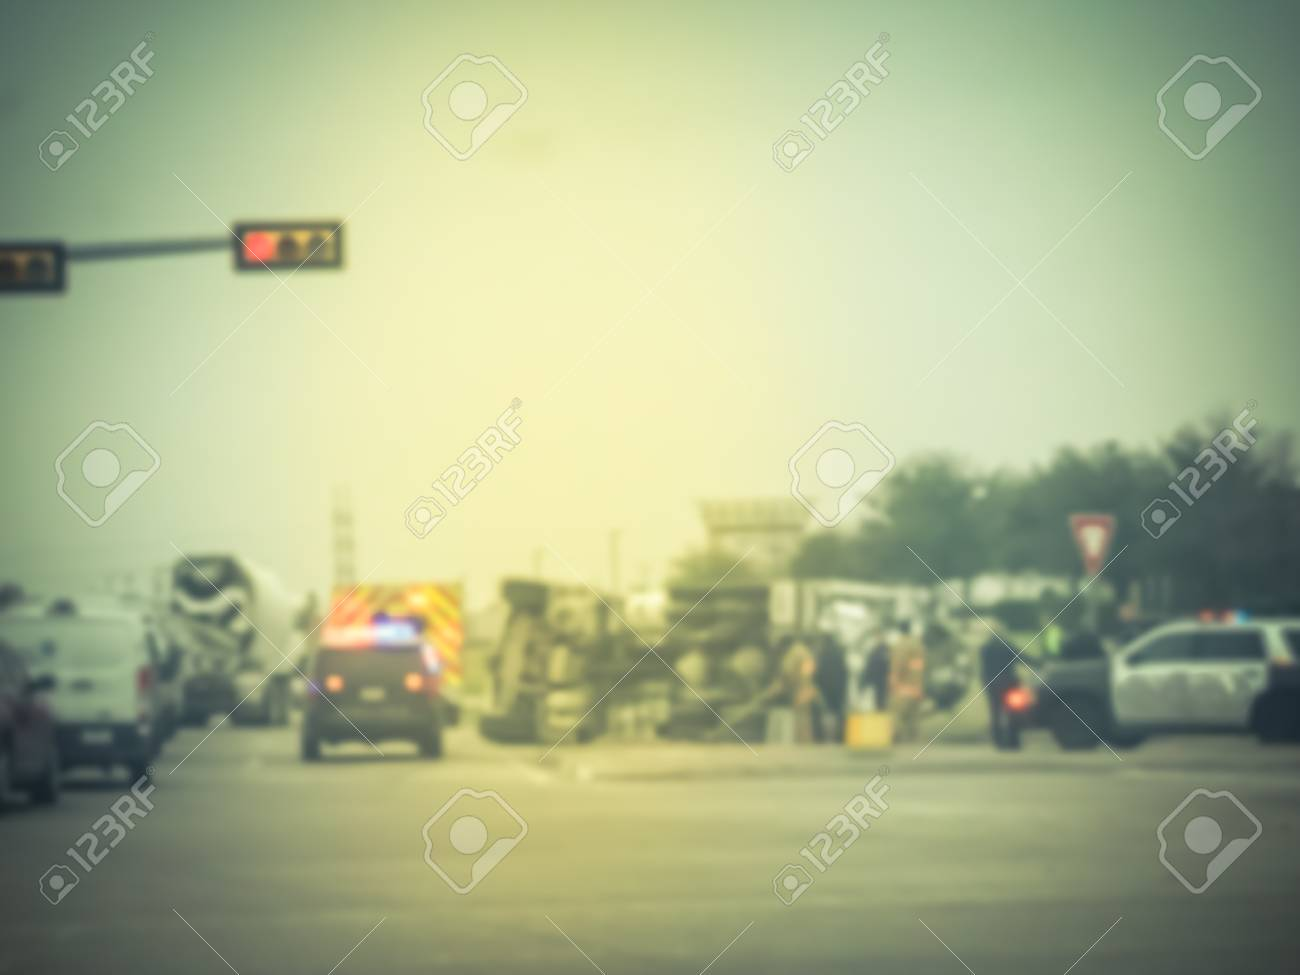 Blurred abstract dramatic car accident at street intersection